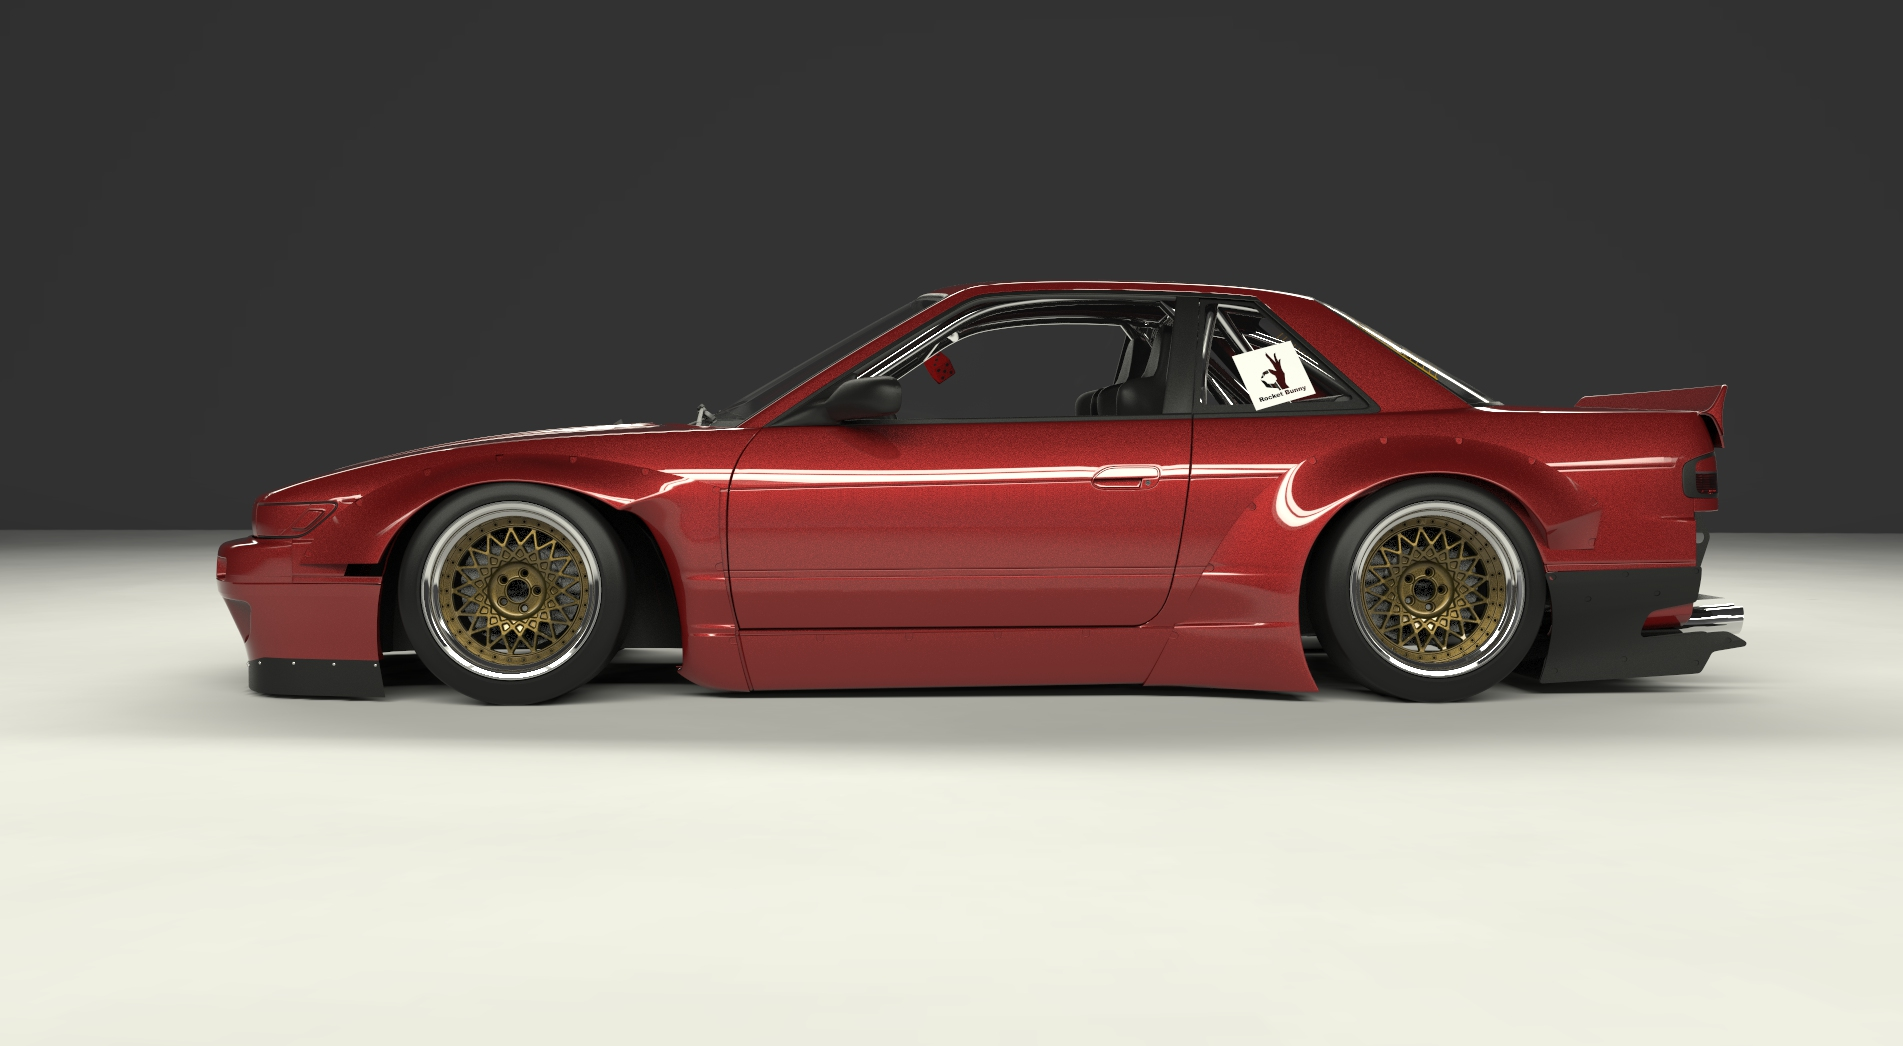 ROCKET BUNNY NISSAN S13 Silvia kit 180SX WIDE BODY KIT